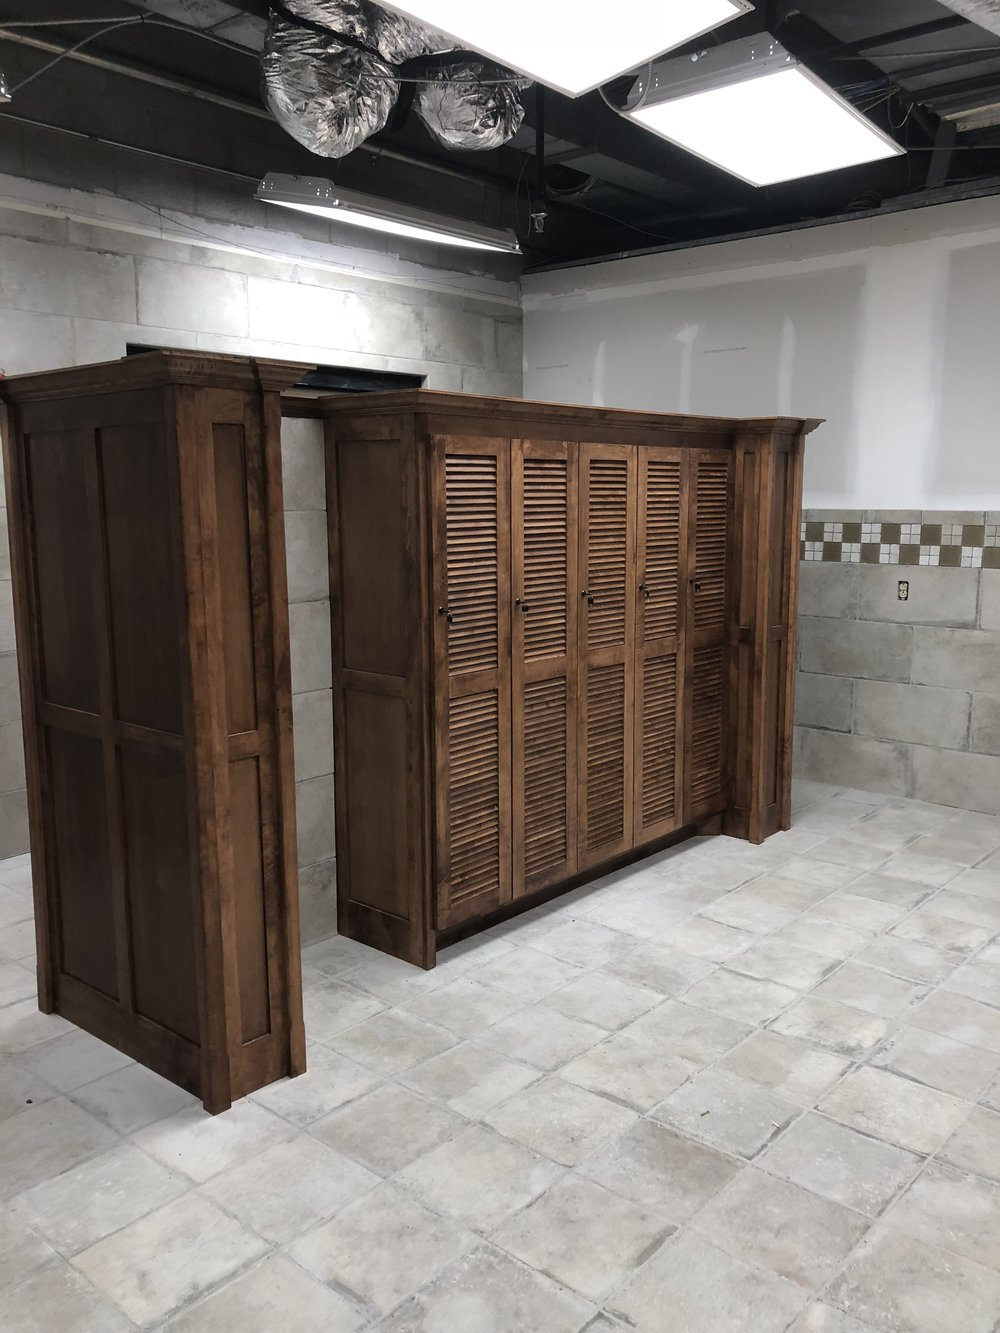 Going with highly figured maple, decorative crown molding, and true louvered doors really sets this commercial locker room apart.